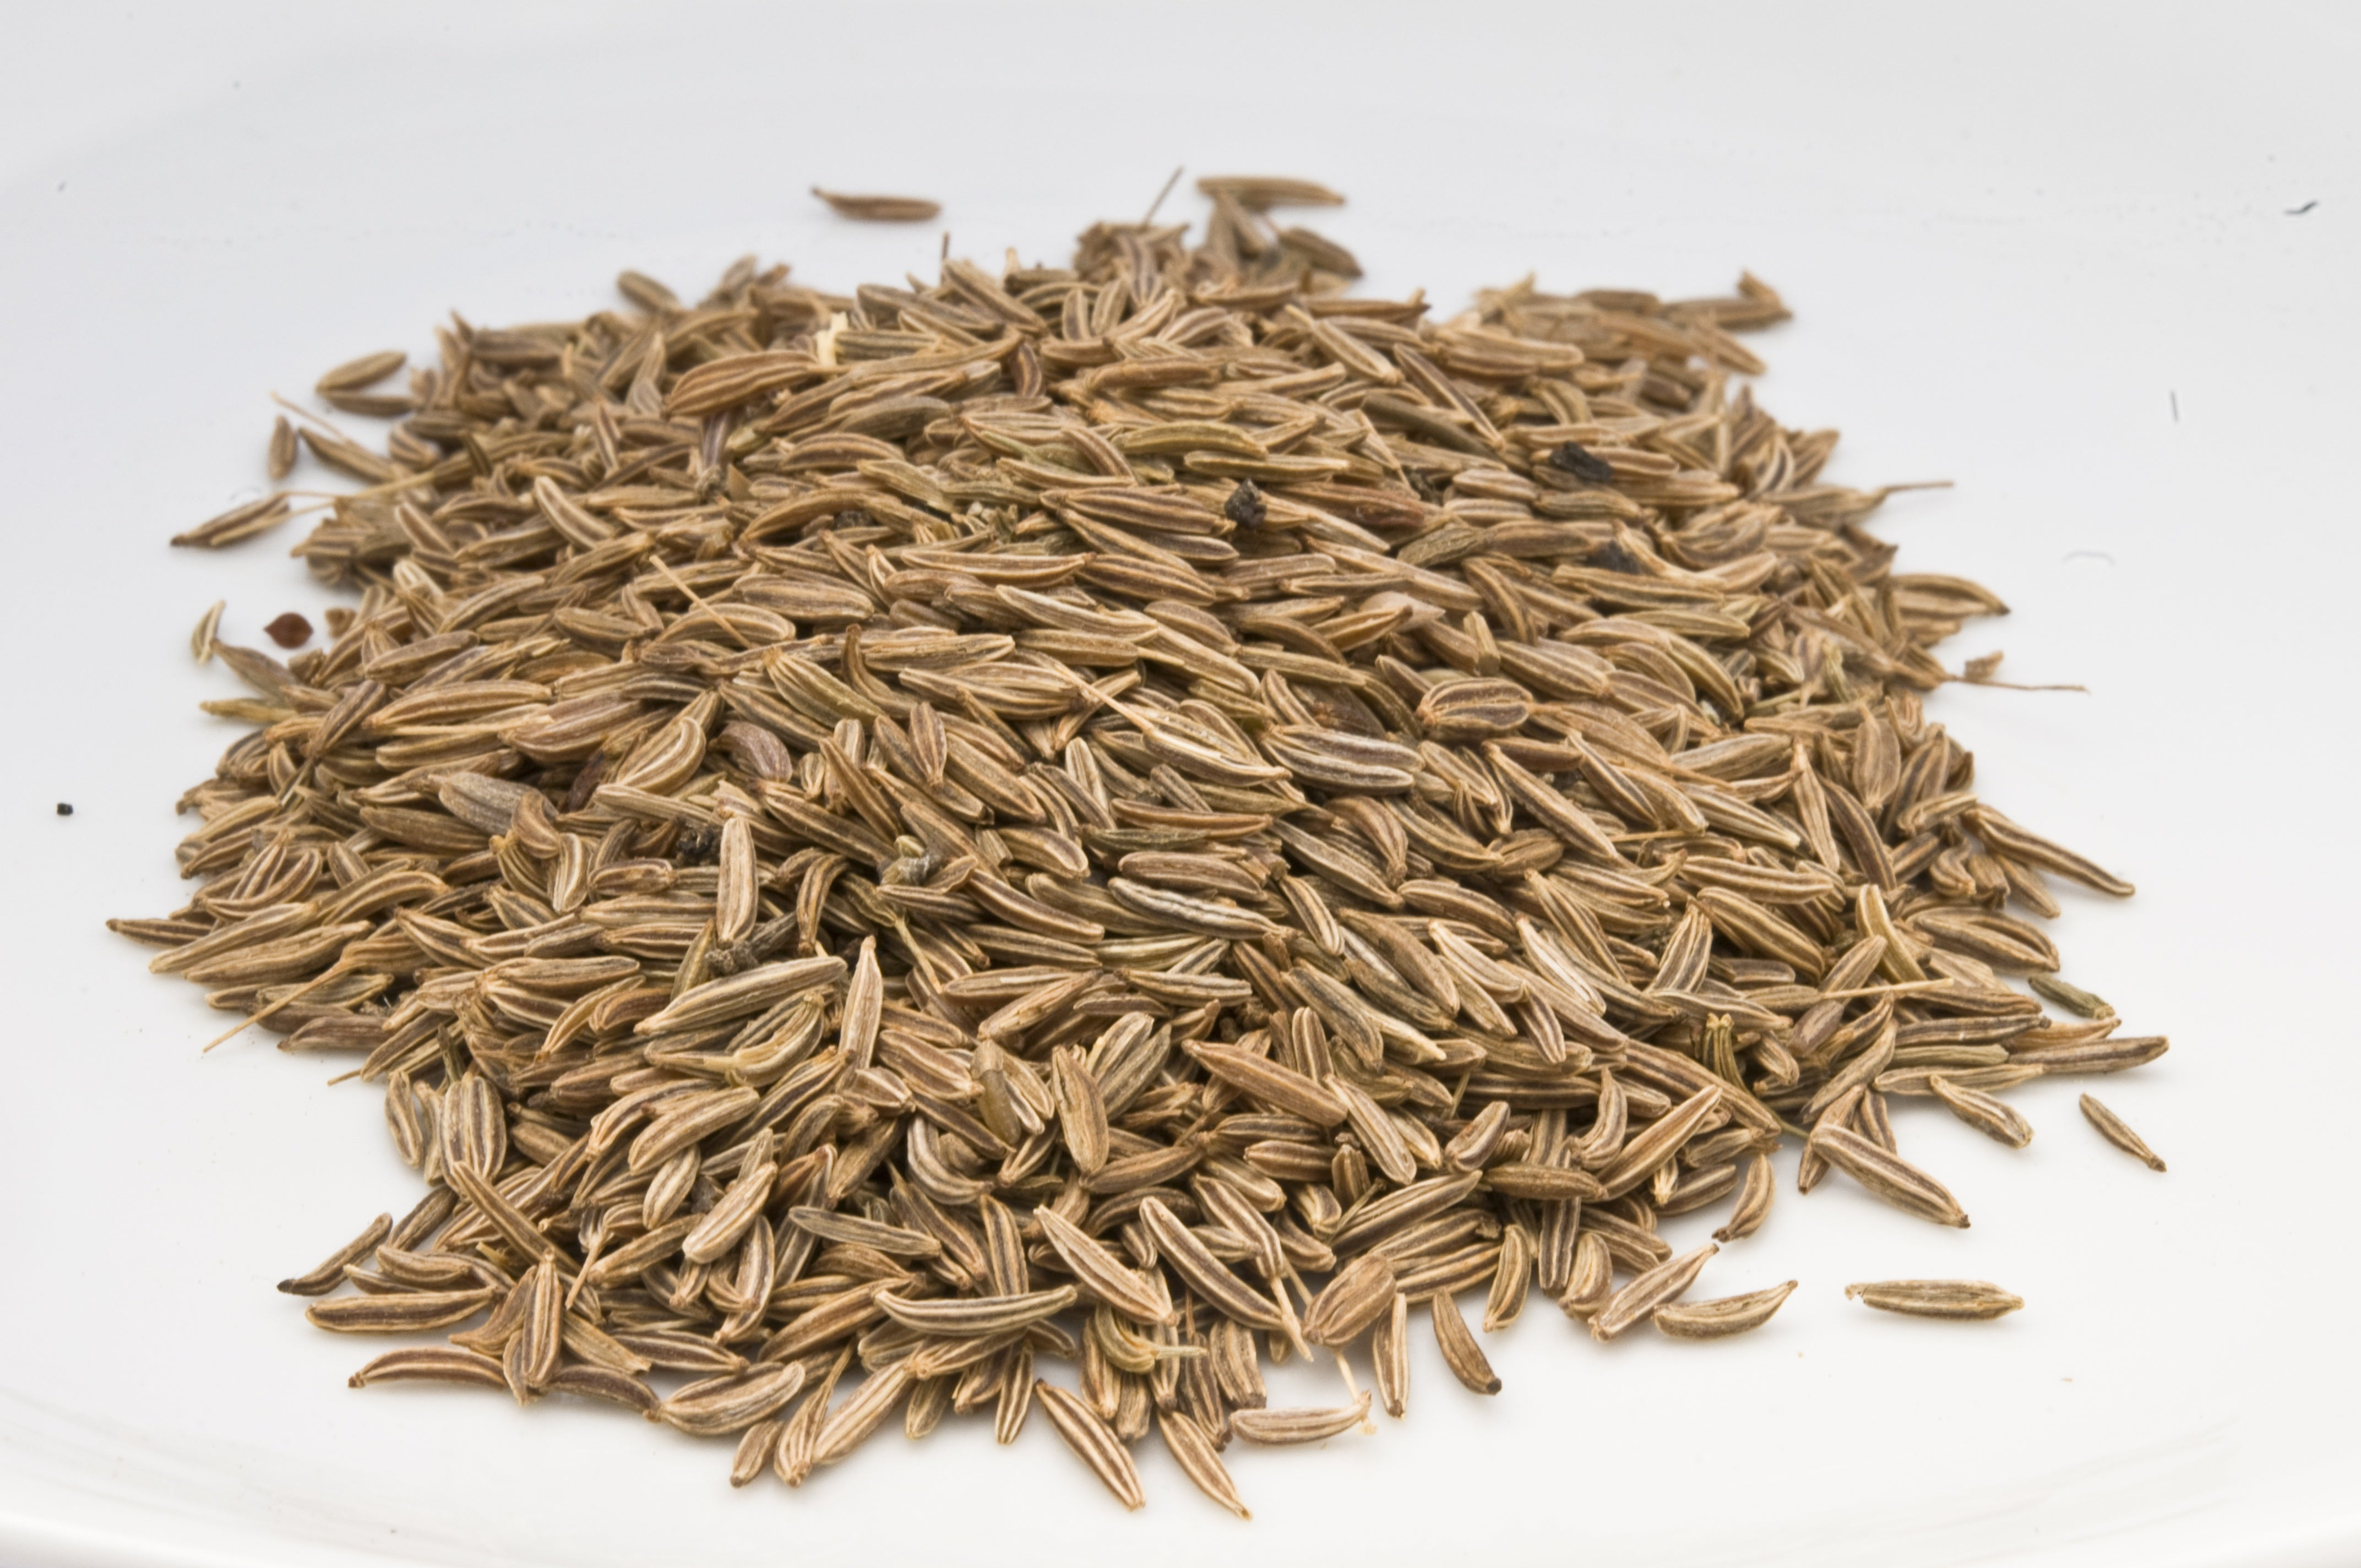 Forum on this topic: How to Use Caraway Seeds, how-to-use-caraway-seeds/